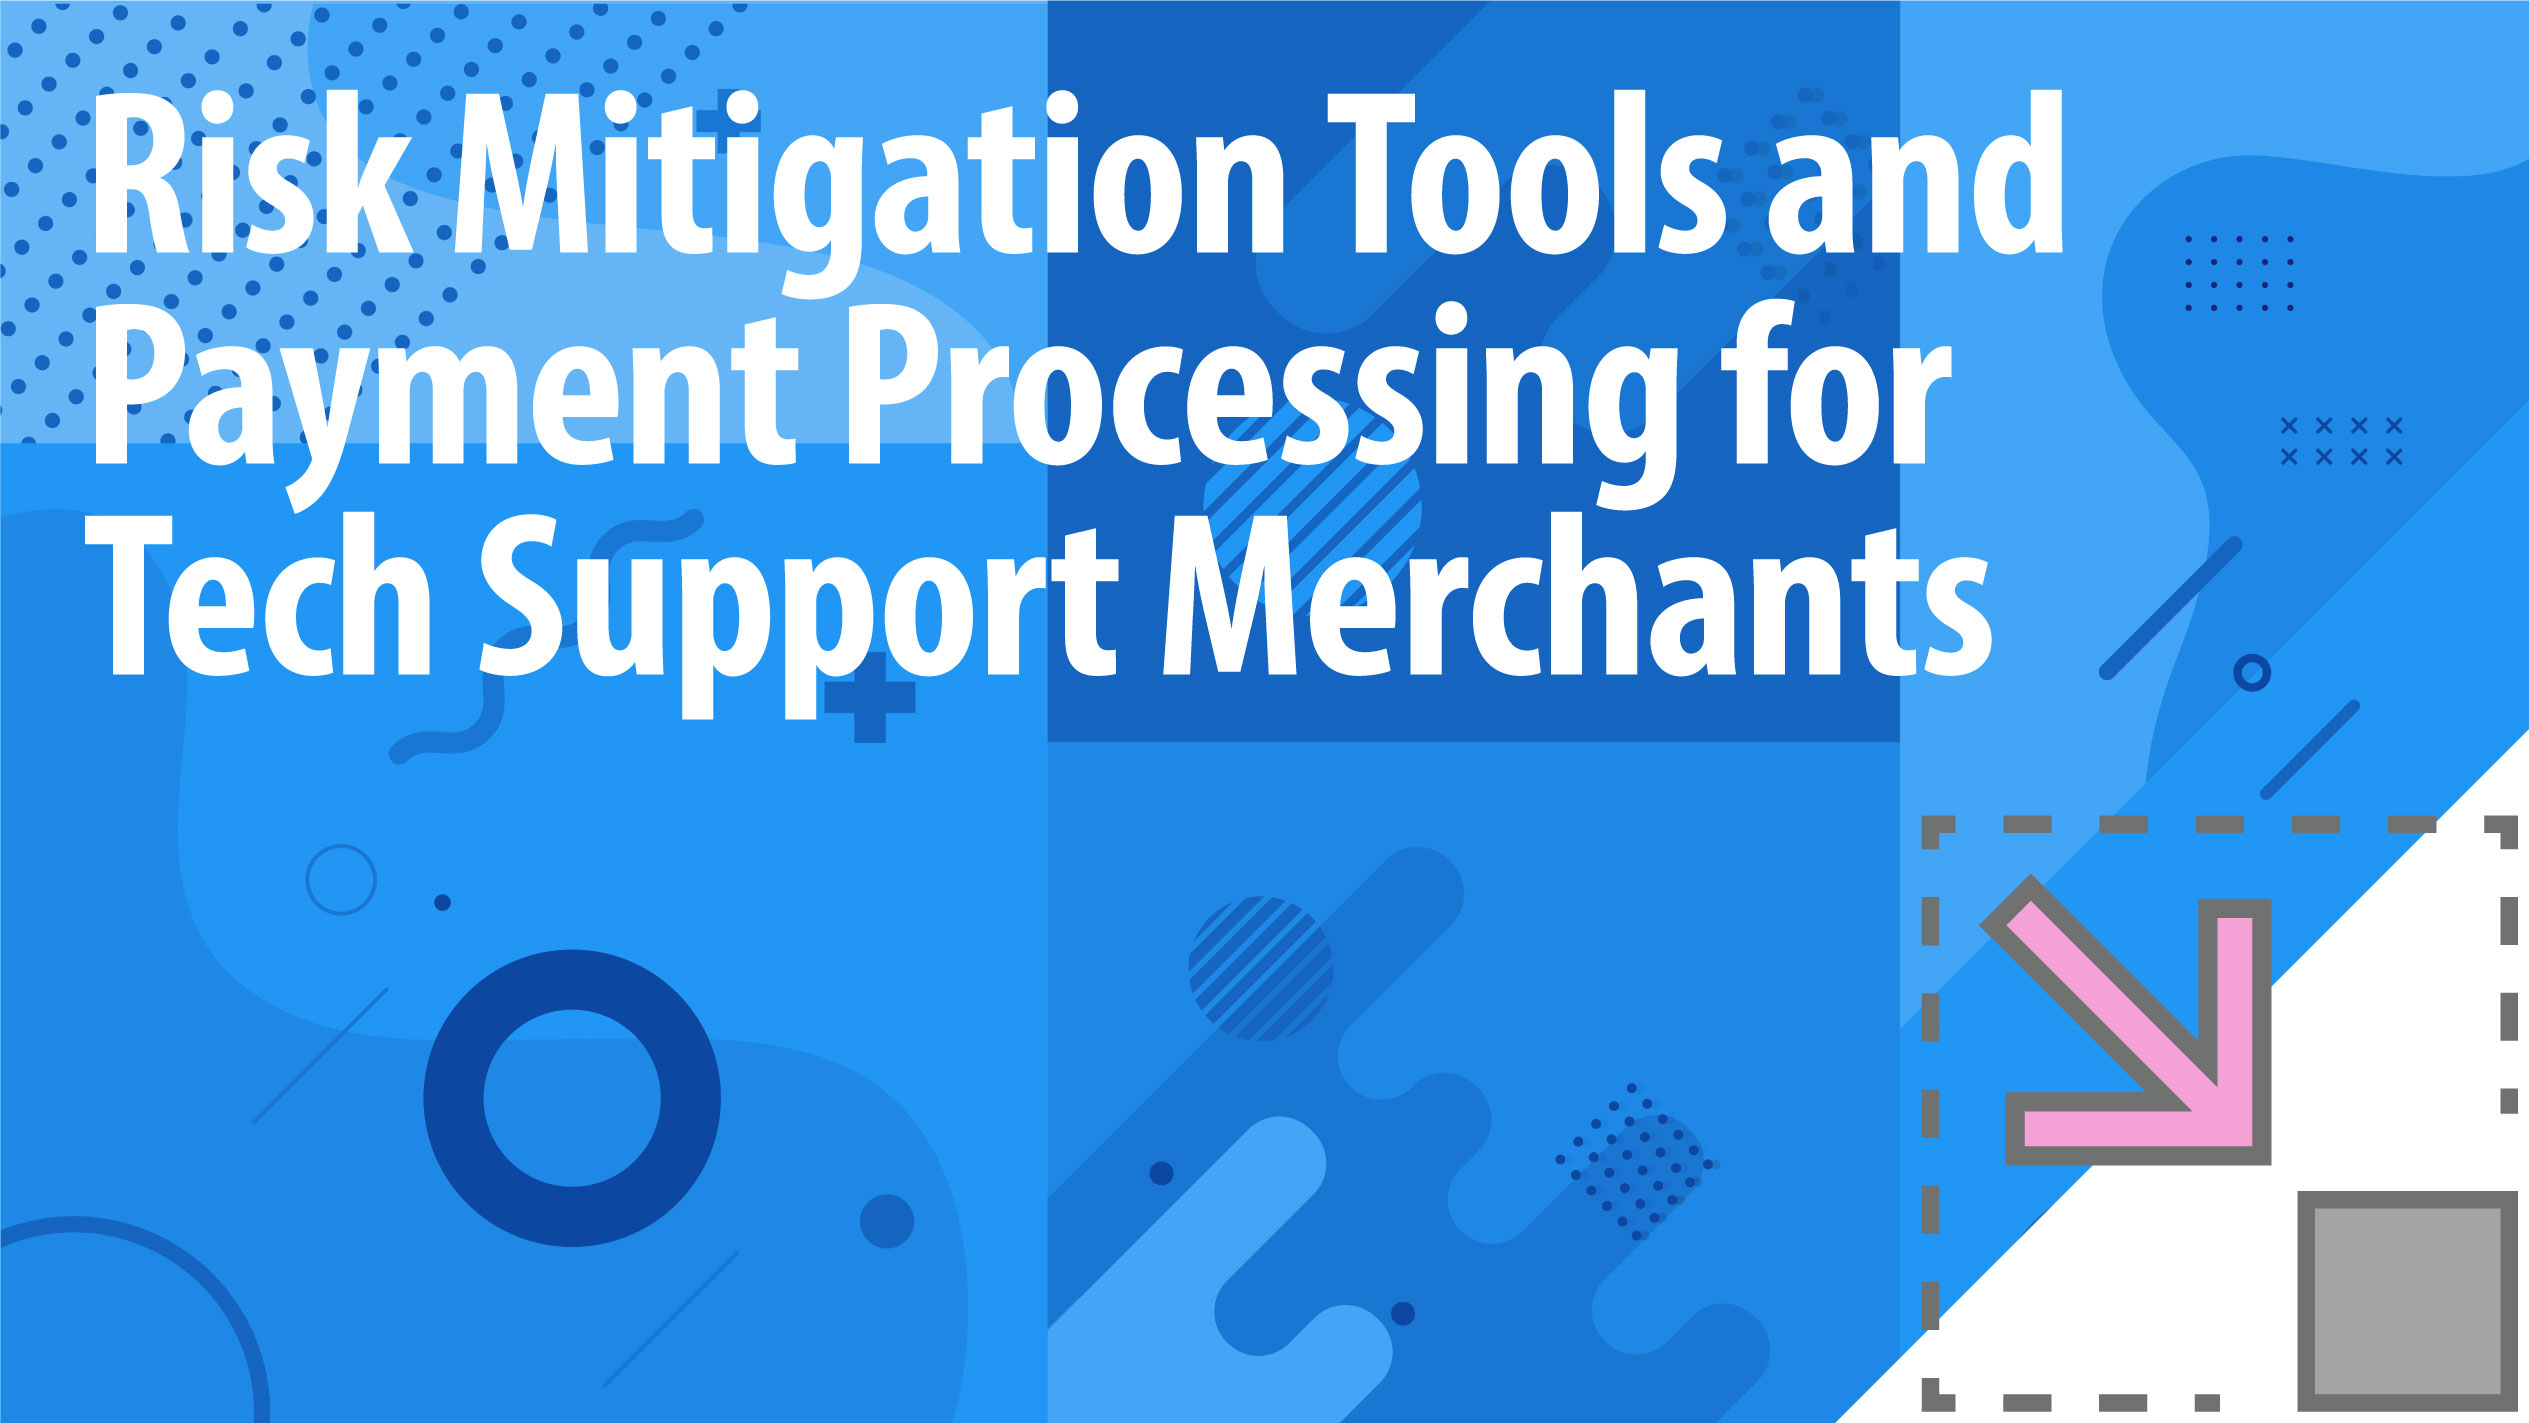 Risk Mitigation Tools and Payment Processing for Tech Support Merchants